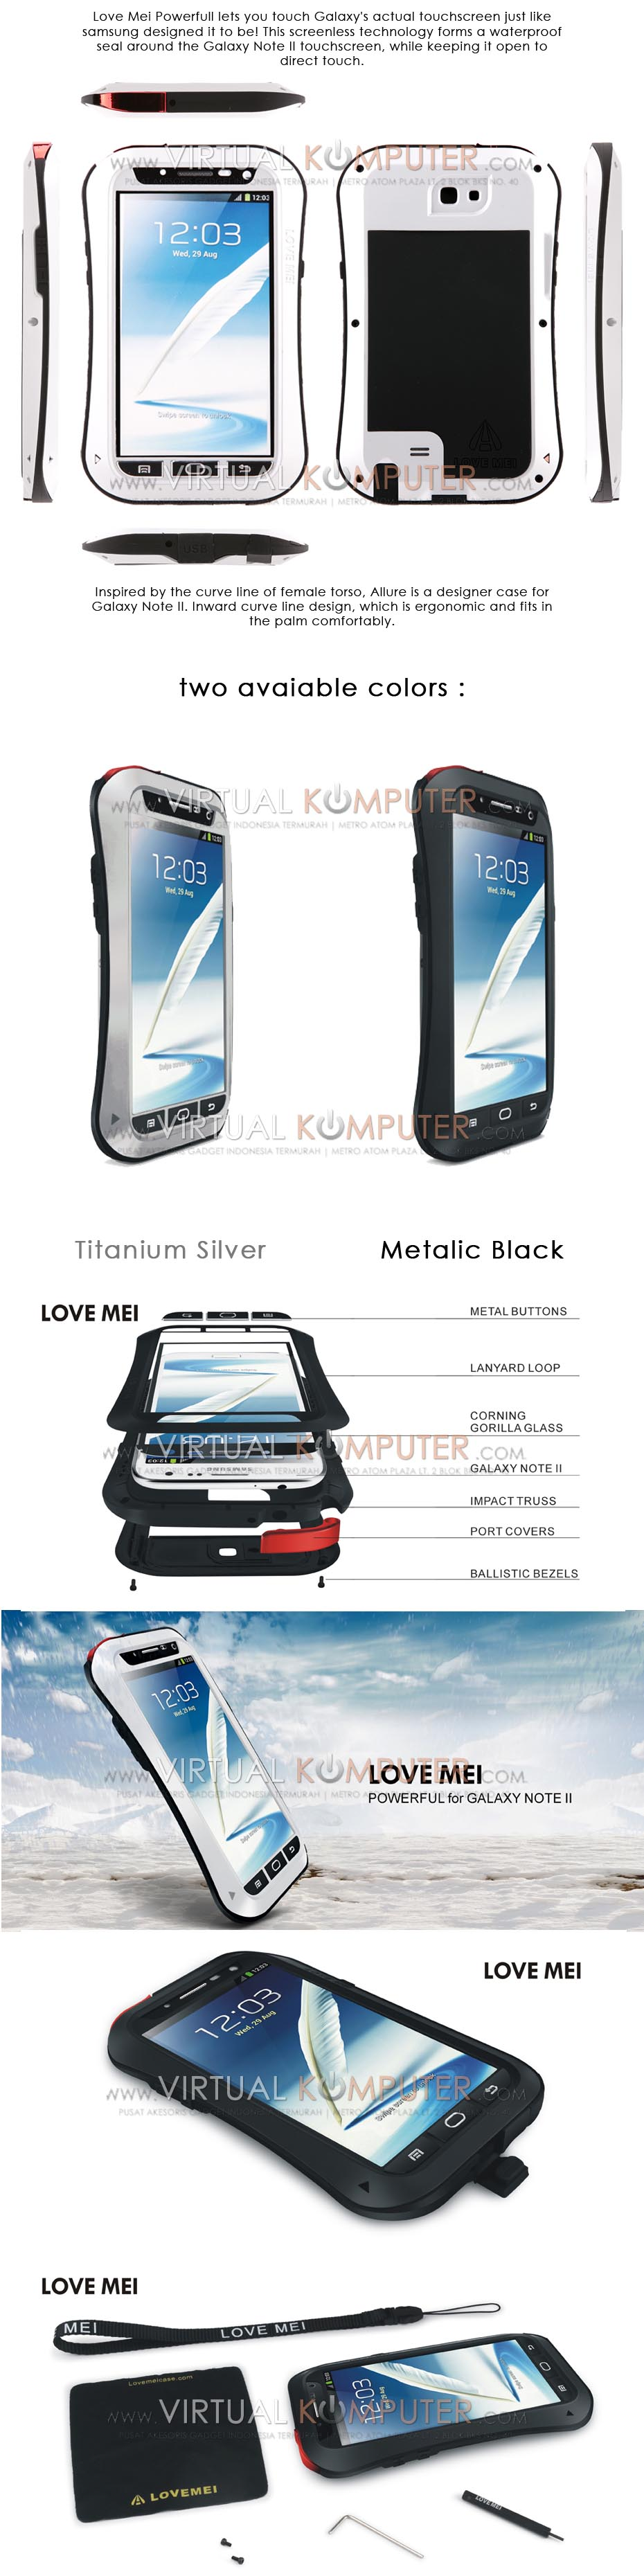 Love Mei Powerful Small Waist Upgrade Version For Samsung Note2 N7100 Overview